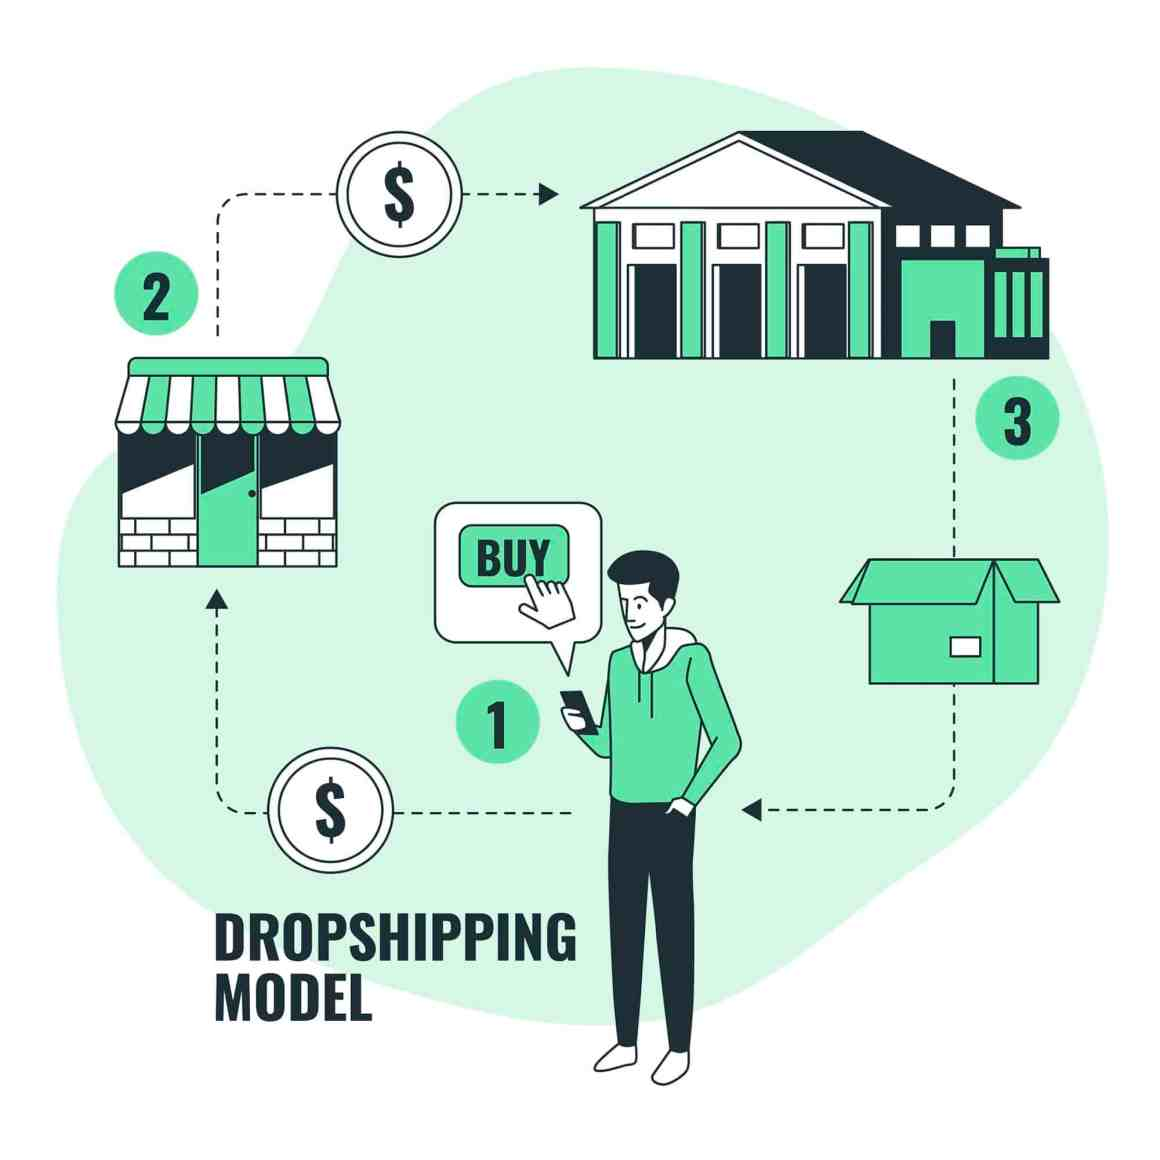 Dropshipping model - one of the 9 best online businesses to start